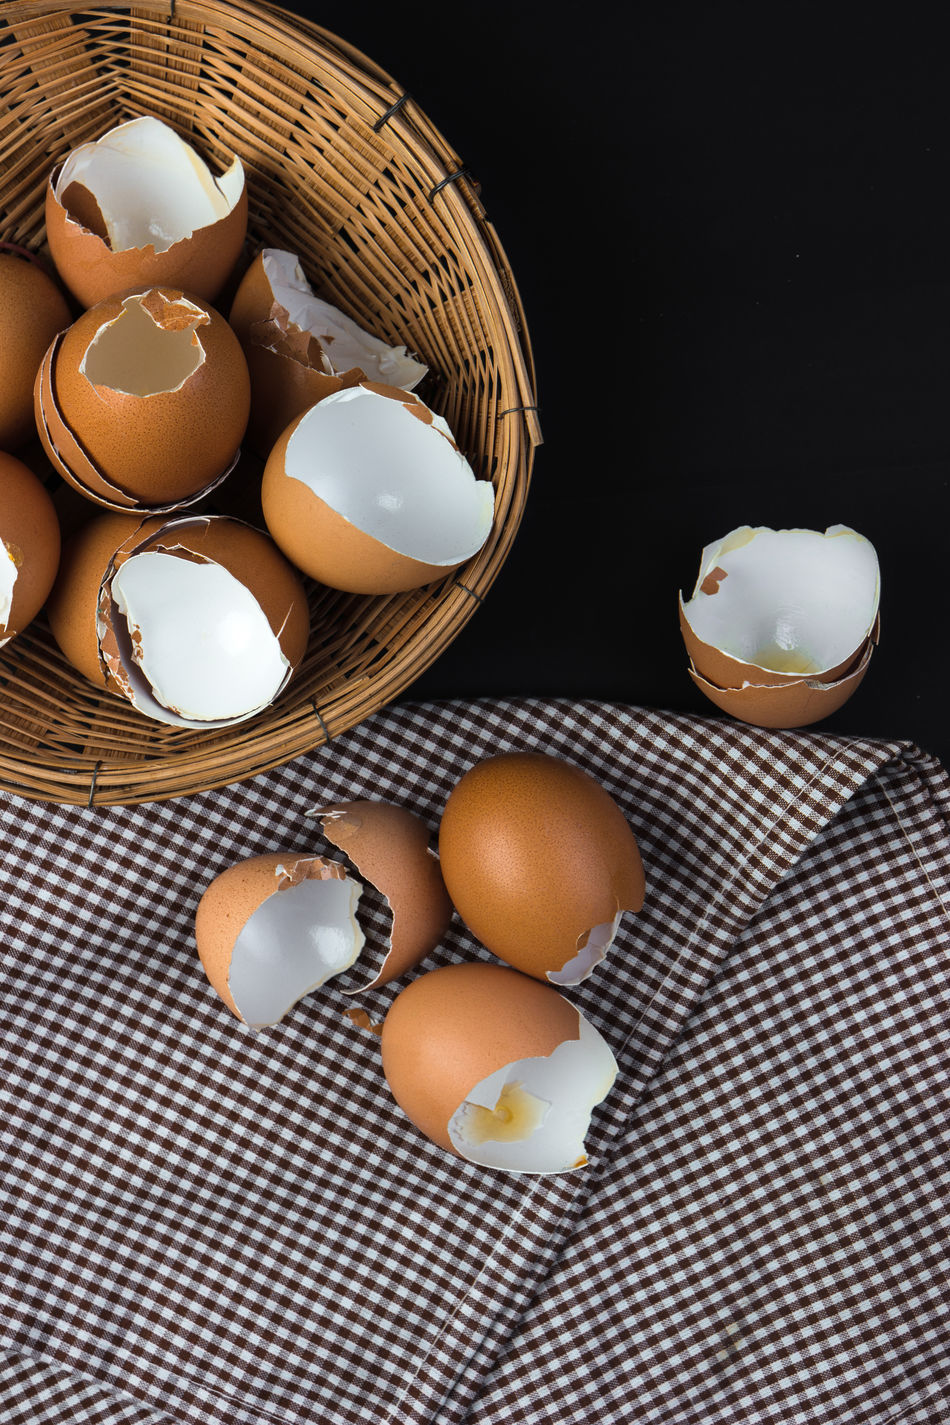 Eggshells in bamboo basket Abundance Arrangement Bamboo Basket Basket Circle Close-up Collection Cooking Cracked Egg Eggshell Eggshells Food And Drink Freshness Group Of Objects Healthy Eating Indoors  Kitchen Utensil Large Group Of Objects No People Order Repetition Shelf Variation